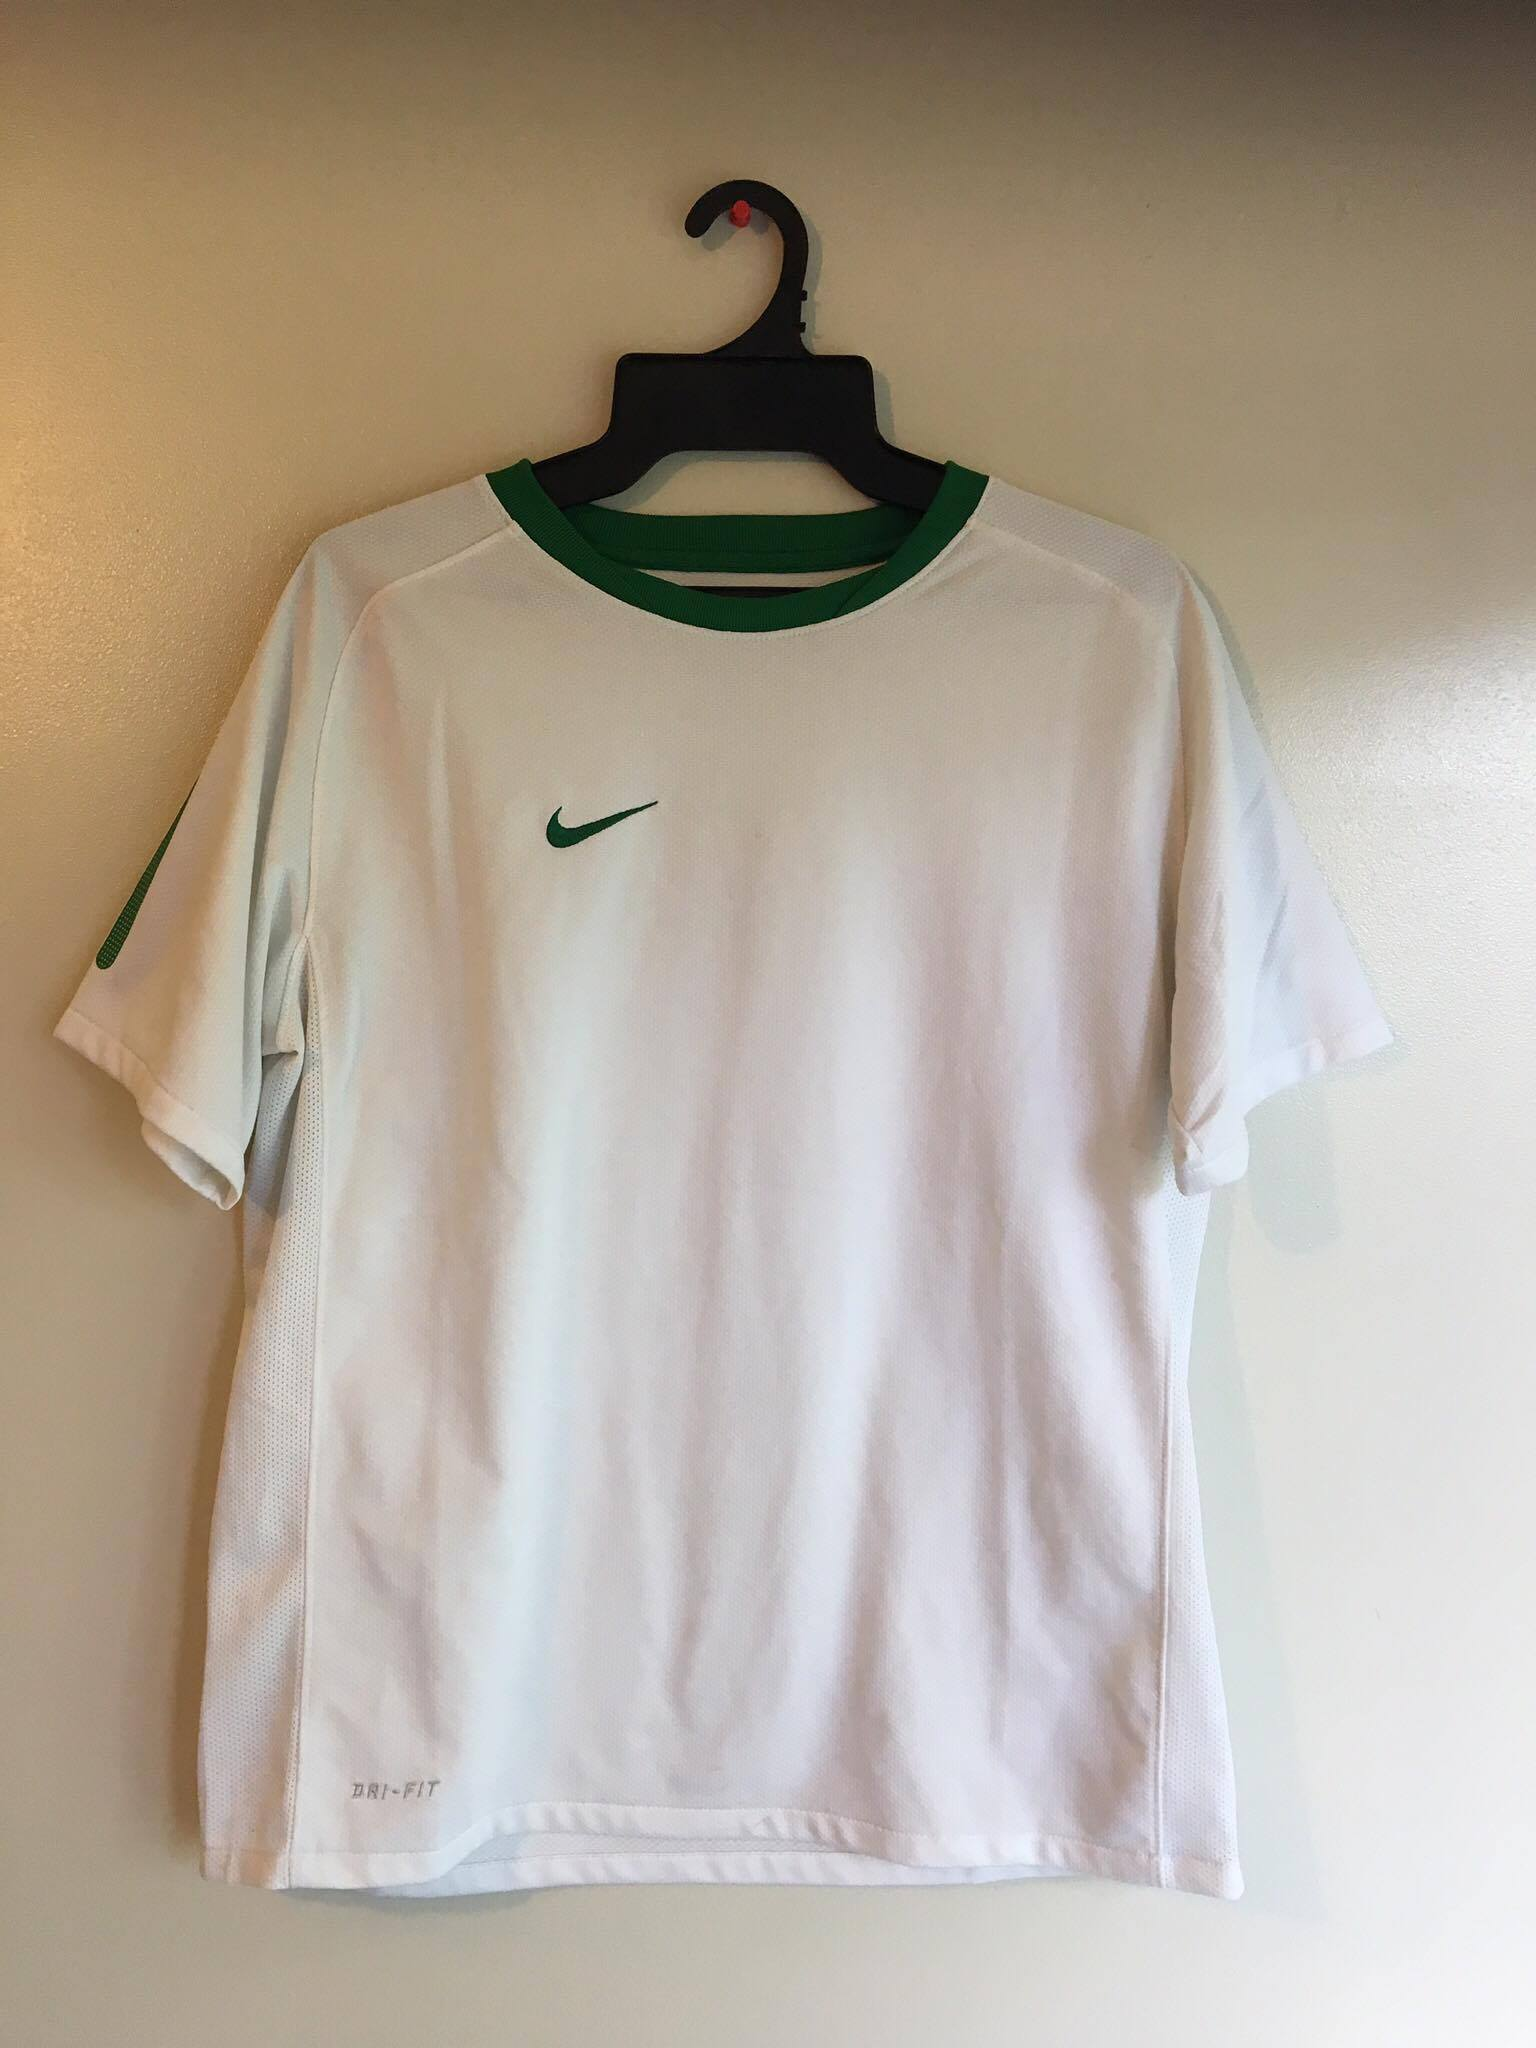 Nike therma-fit active wear shirt/ white and green